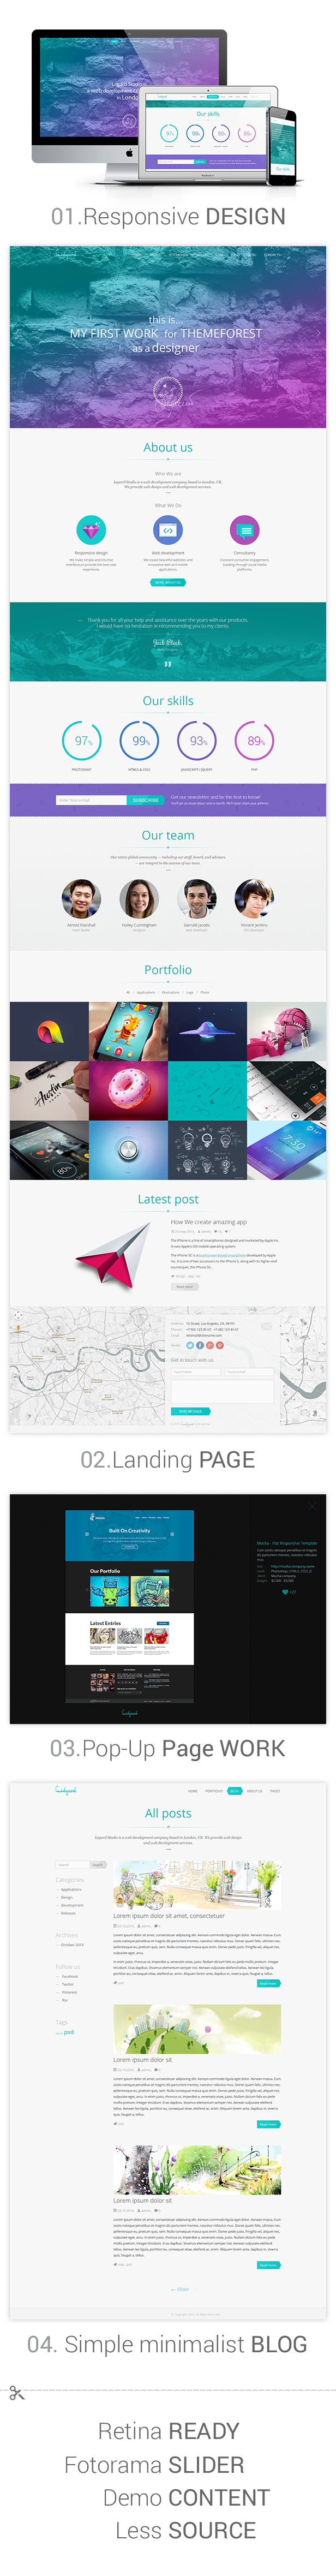 Ledgard WP - Clean Responsive Landing Page + Blog